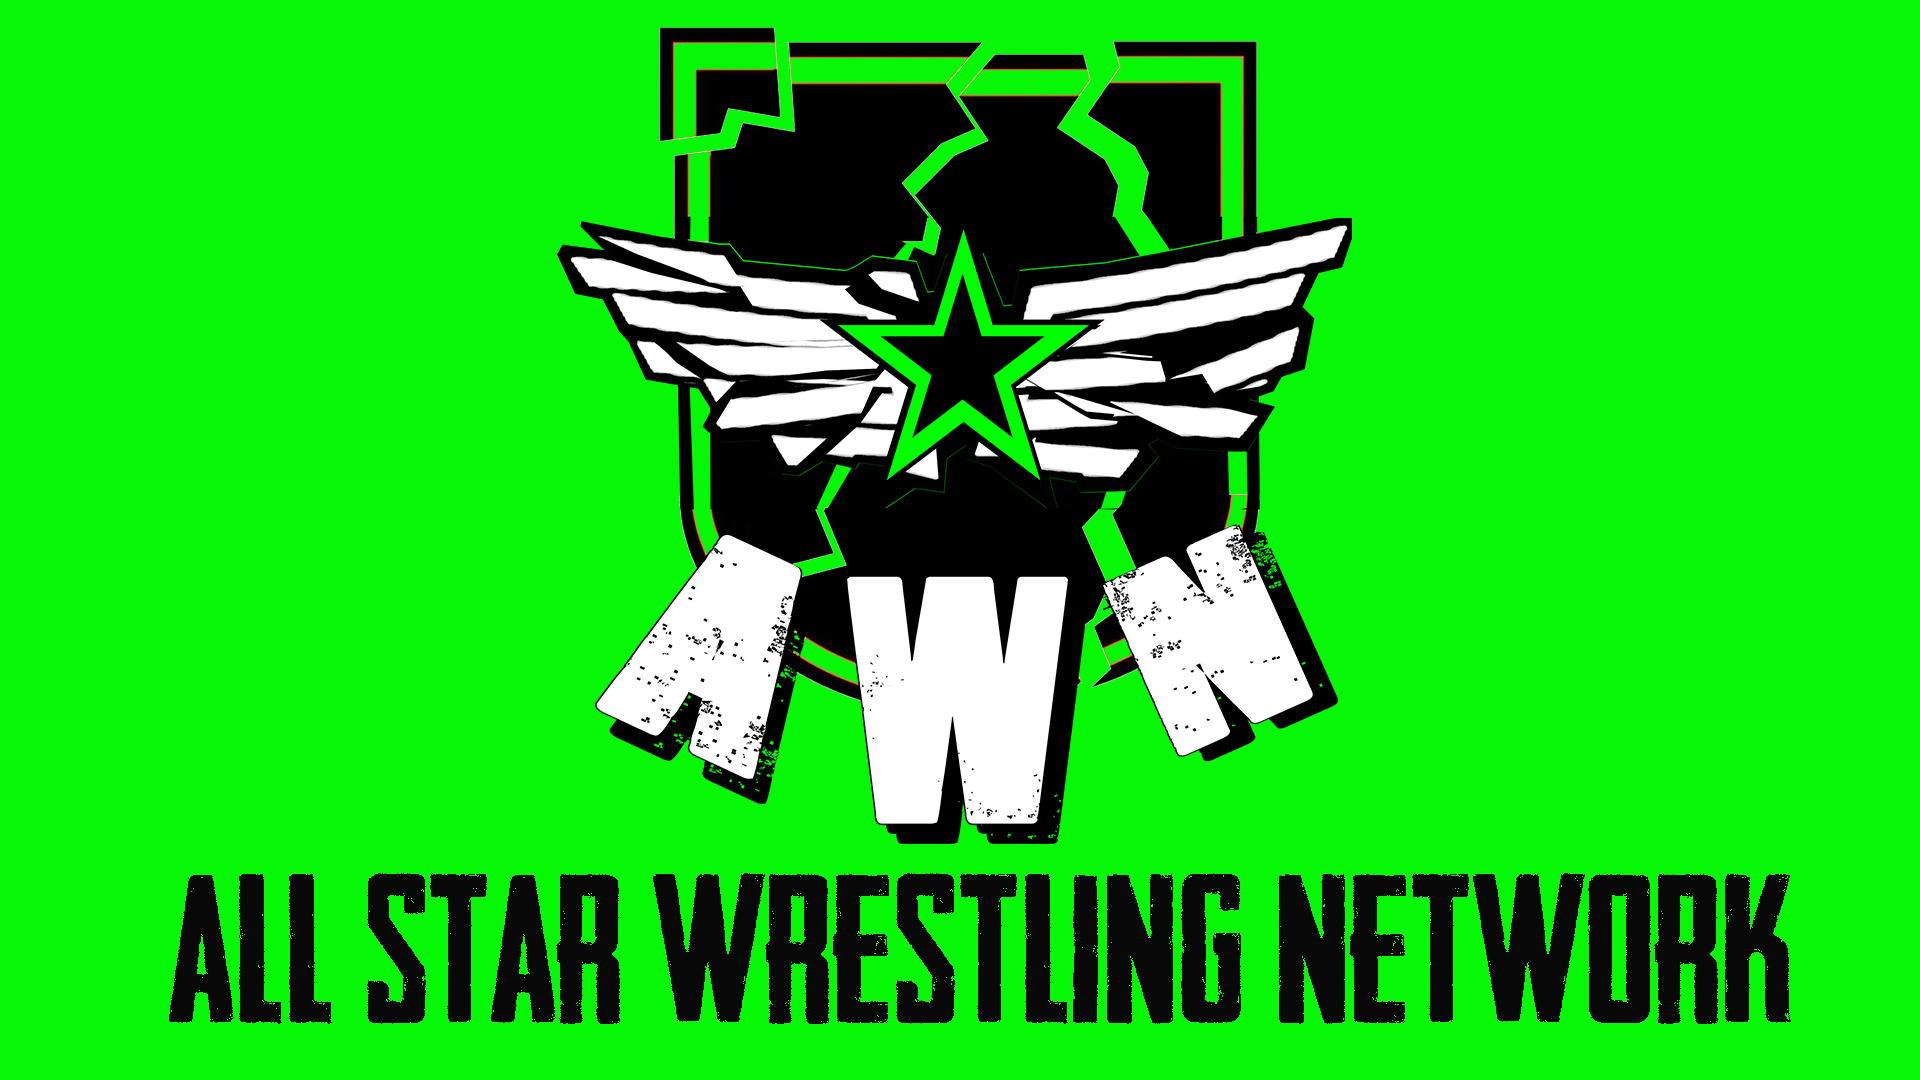 All Star Wrestling Network Season 3 - Season 3